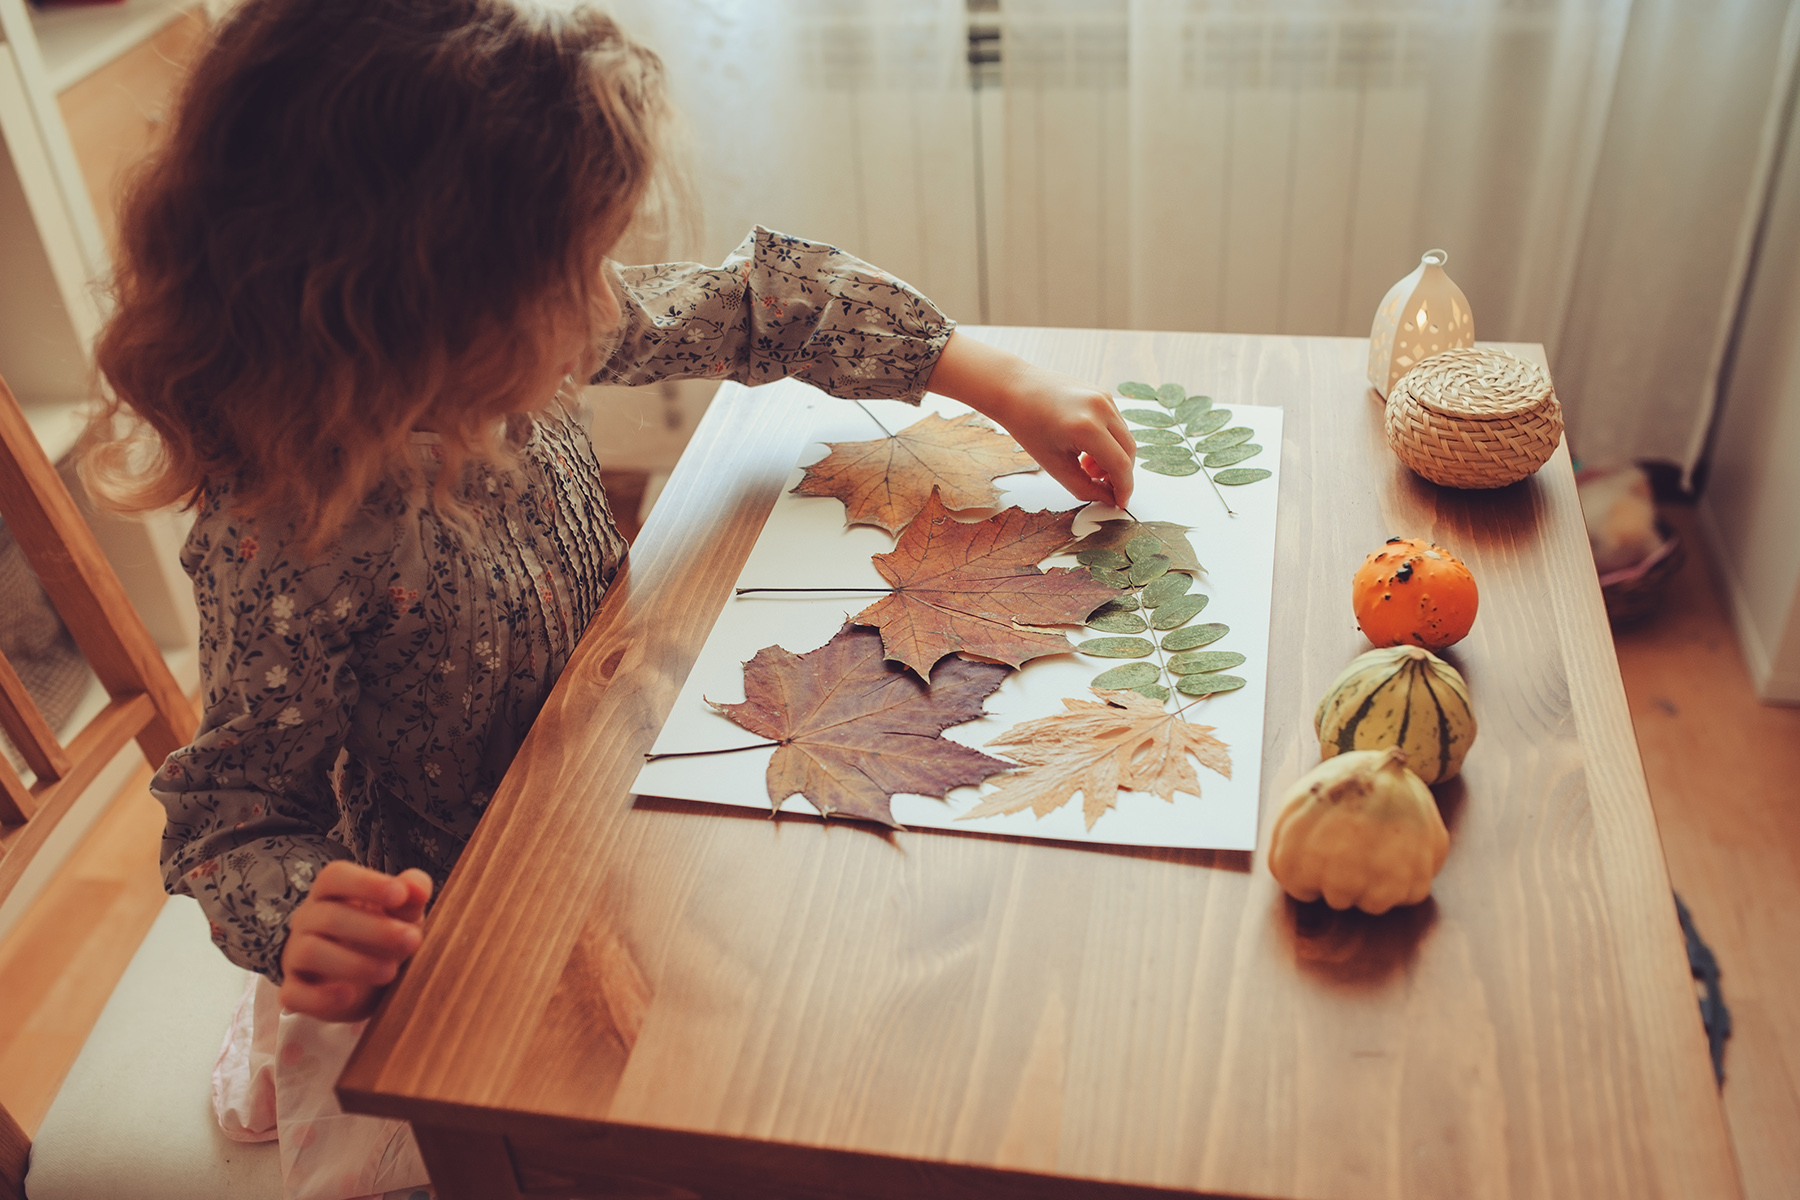 Child making a nature collage